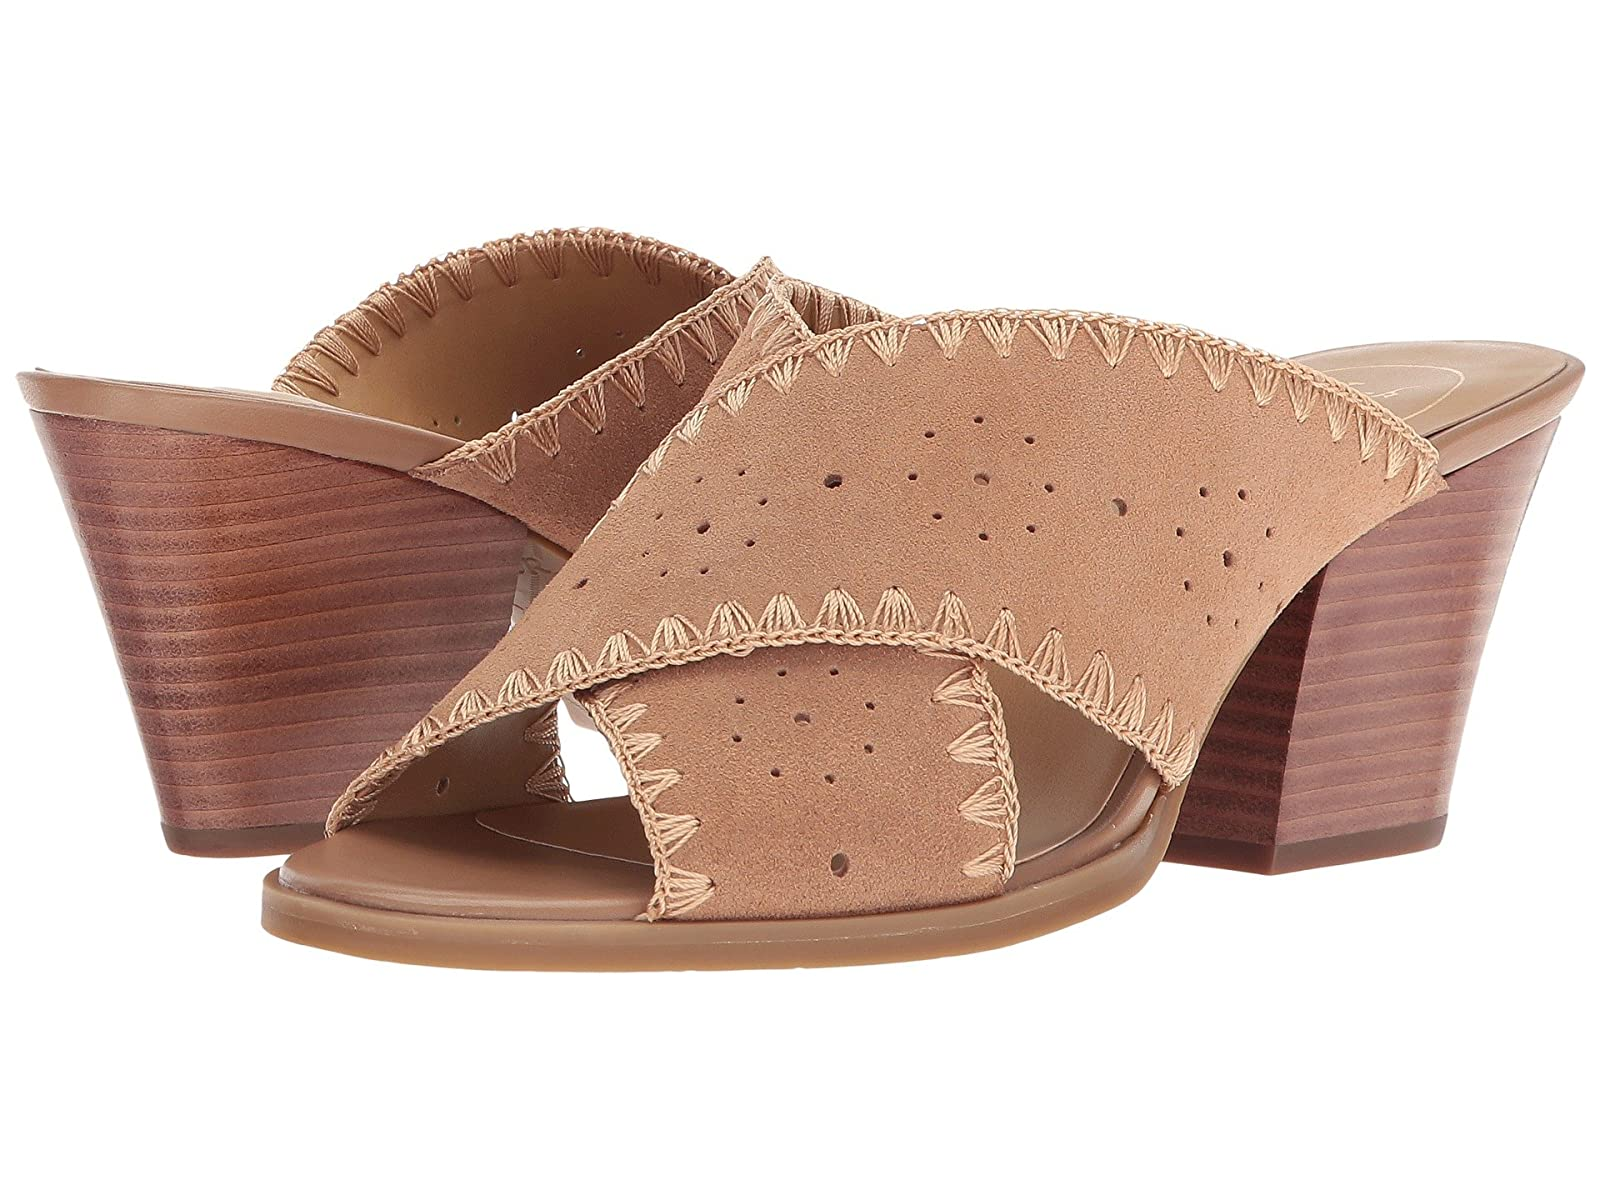 Jack Rogers BlakelyCheap and distinctive eye-catching shoes